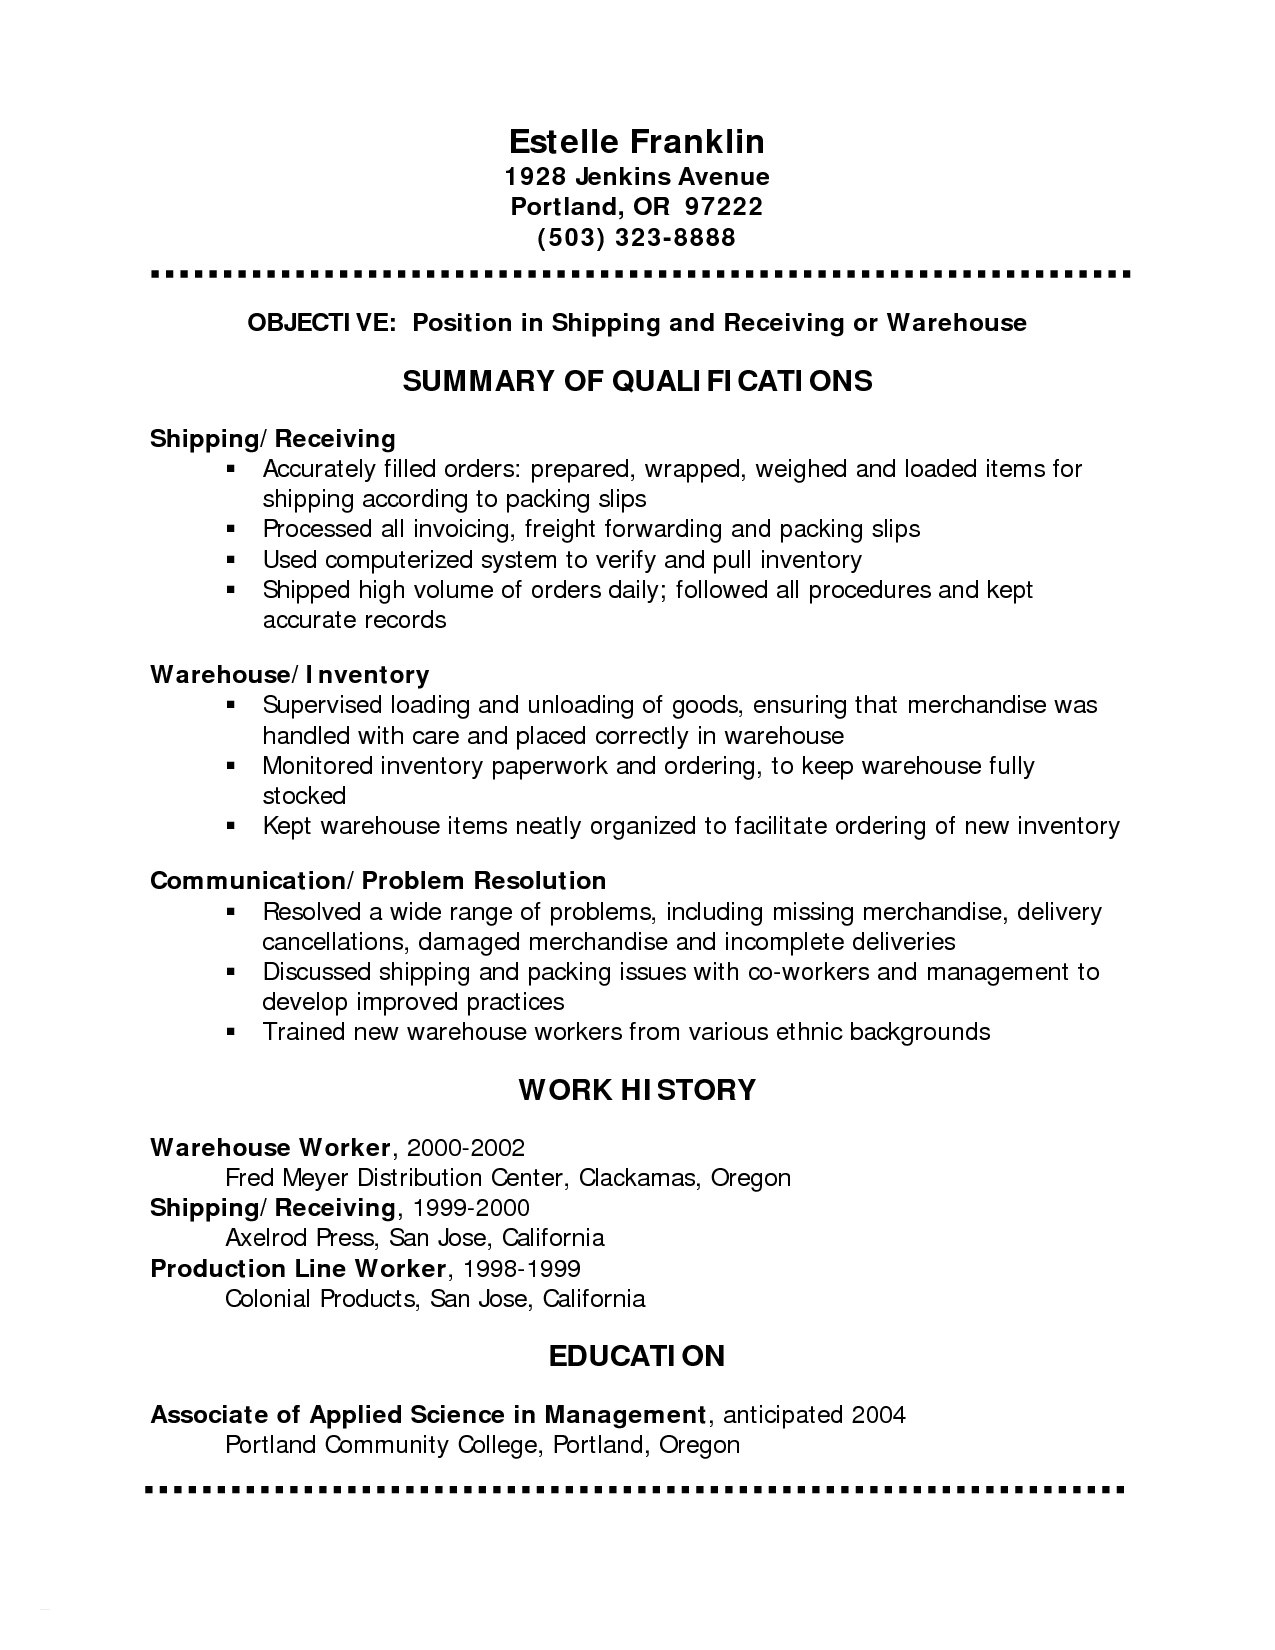 Pull Letter Template - Basic Resume Sample Free Download Free Job Resume Template Cover